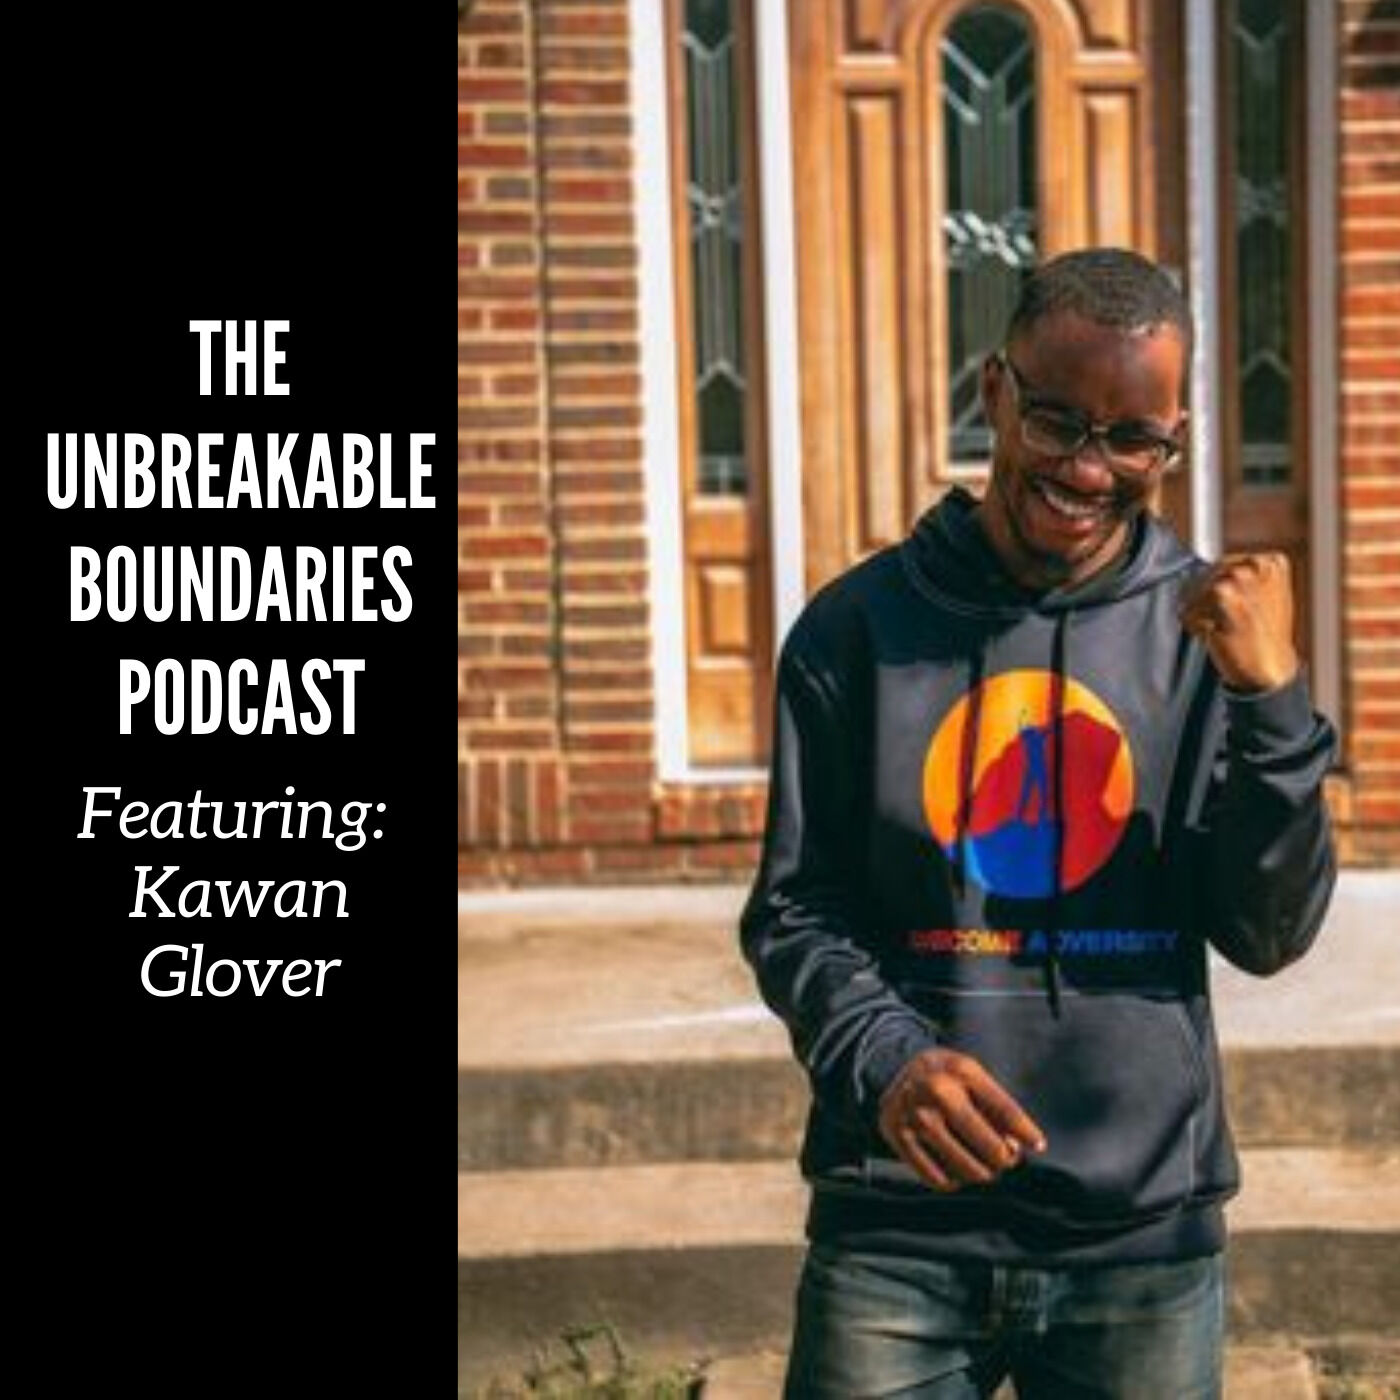 #28 Kawan; A survivor of three brain surgeries, substance abuse, and suicidal ideations